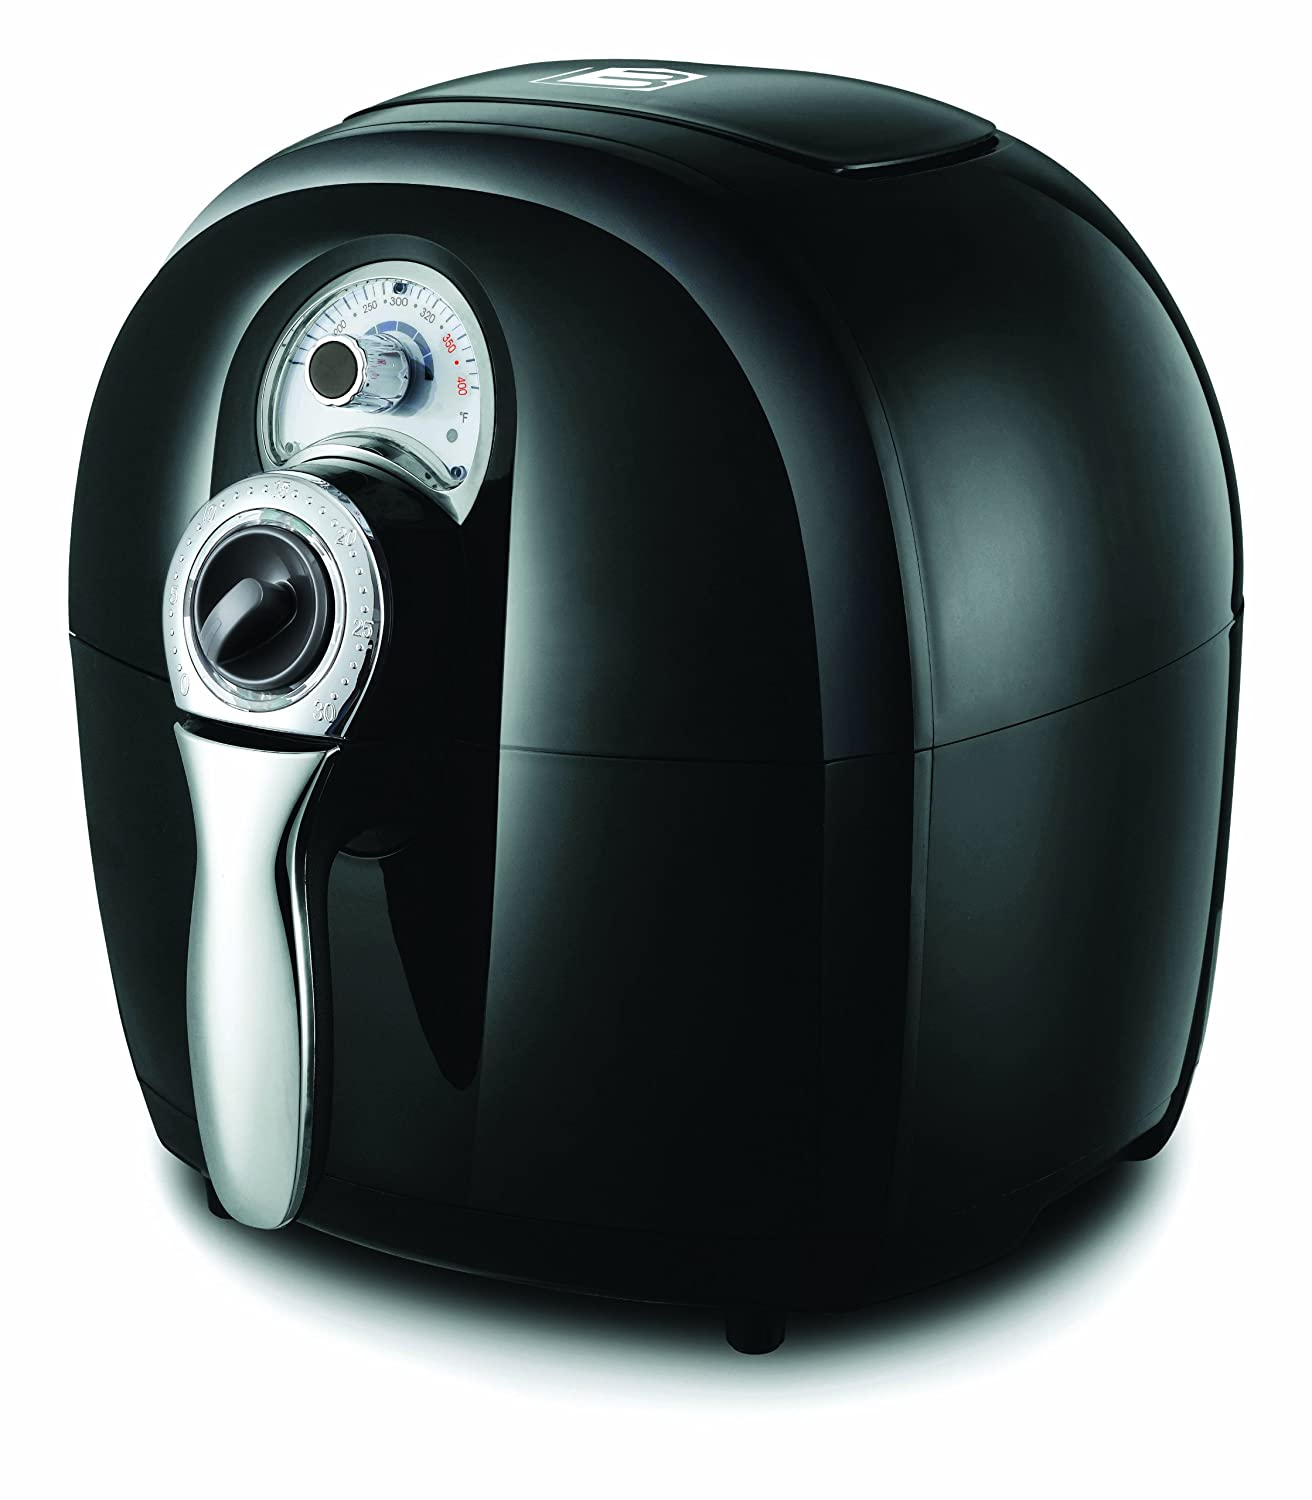 top-10-best-air-fryer-in-2015-reviews-6